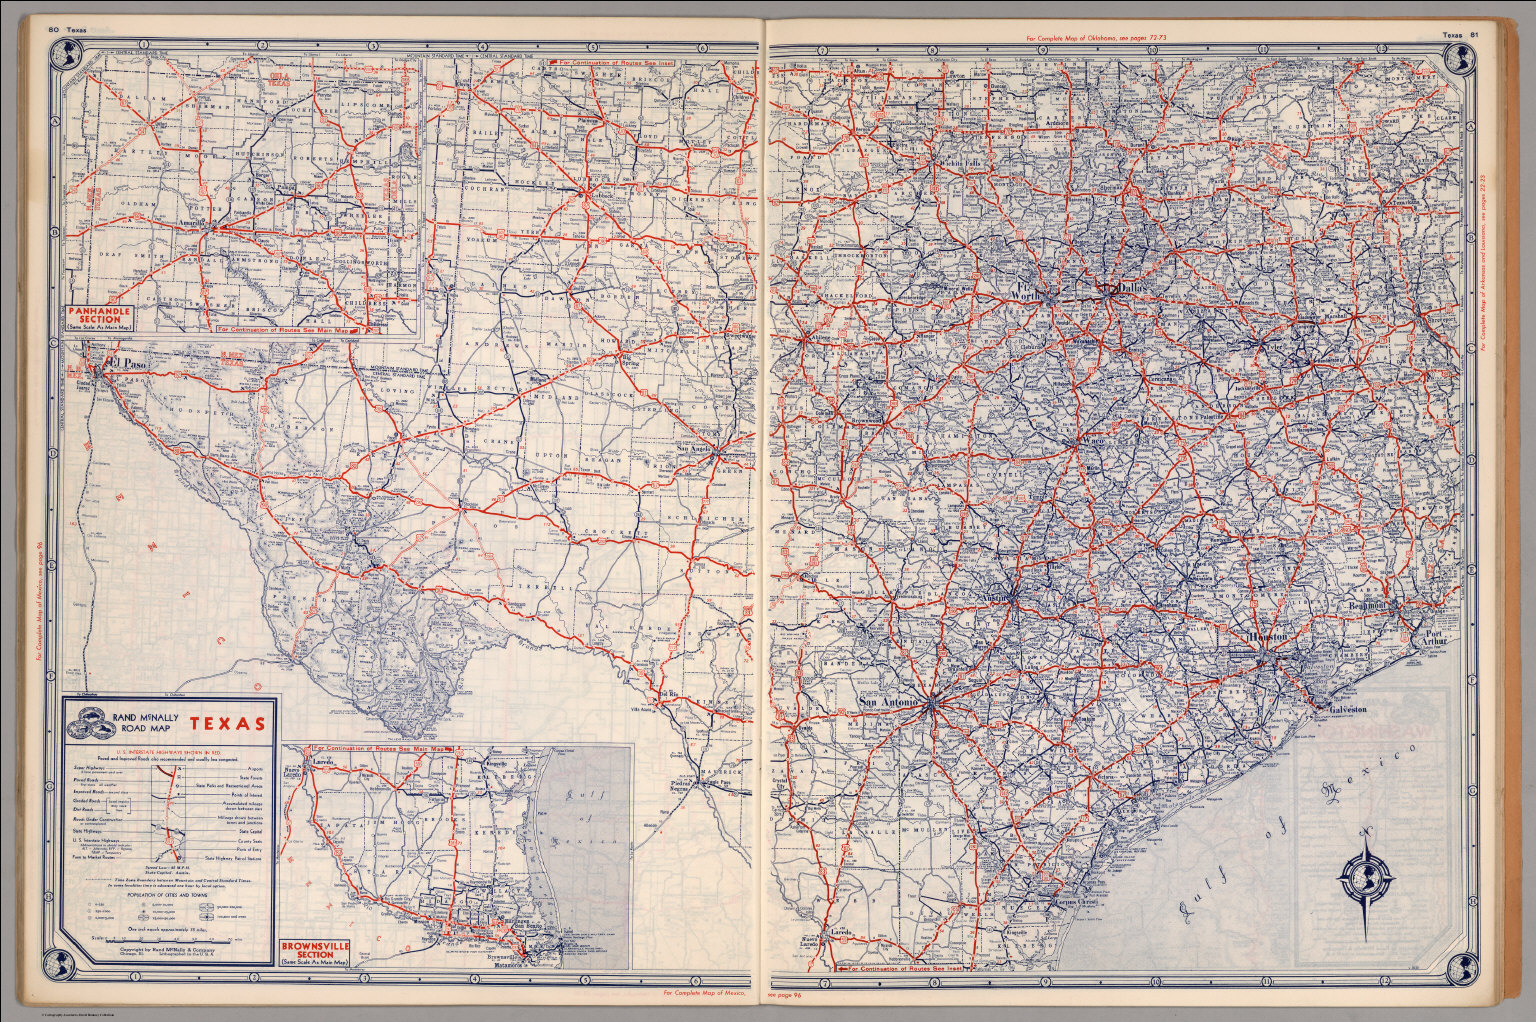 Road map of Texas - David Rumsey Historical Map Collection